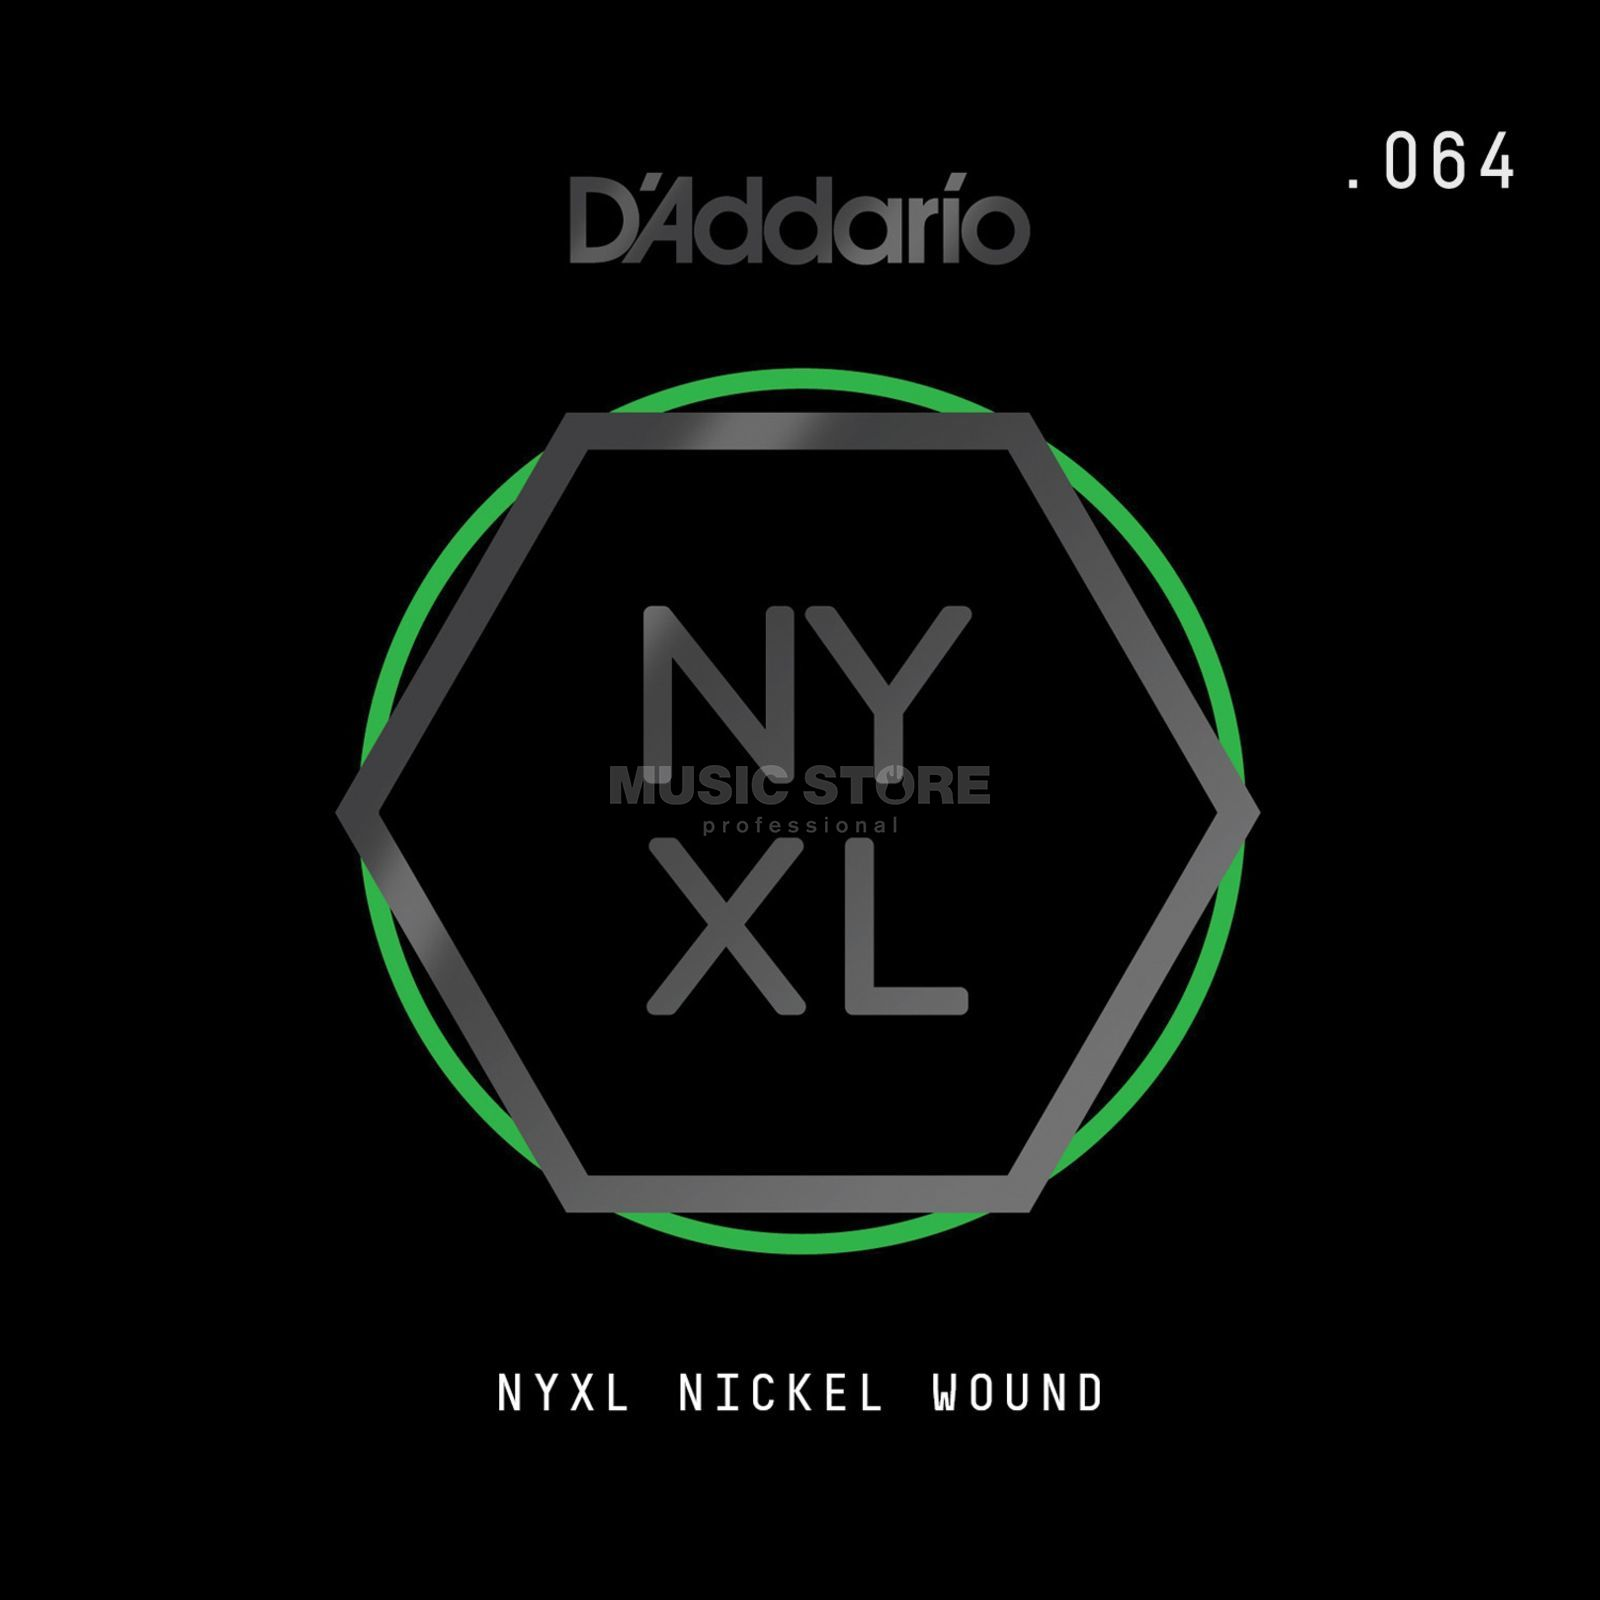 D'Addario NYNW064 Single String Nickel Wound Изображение товара